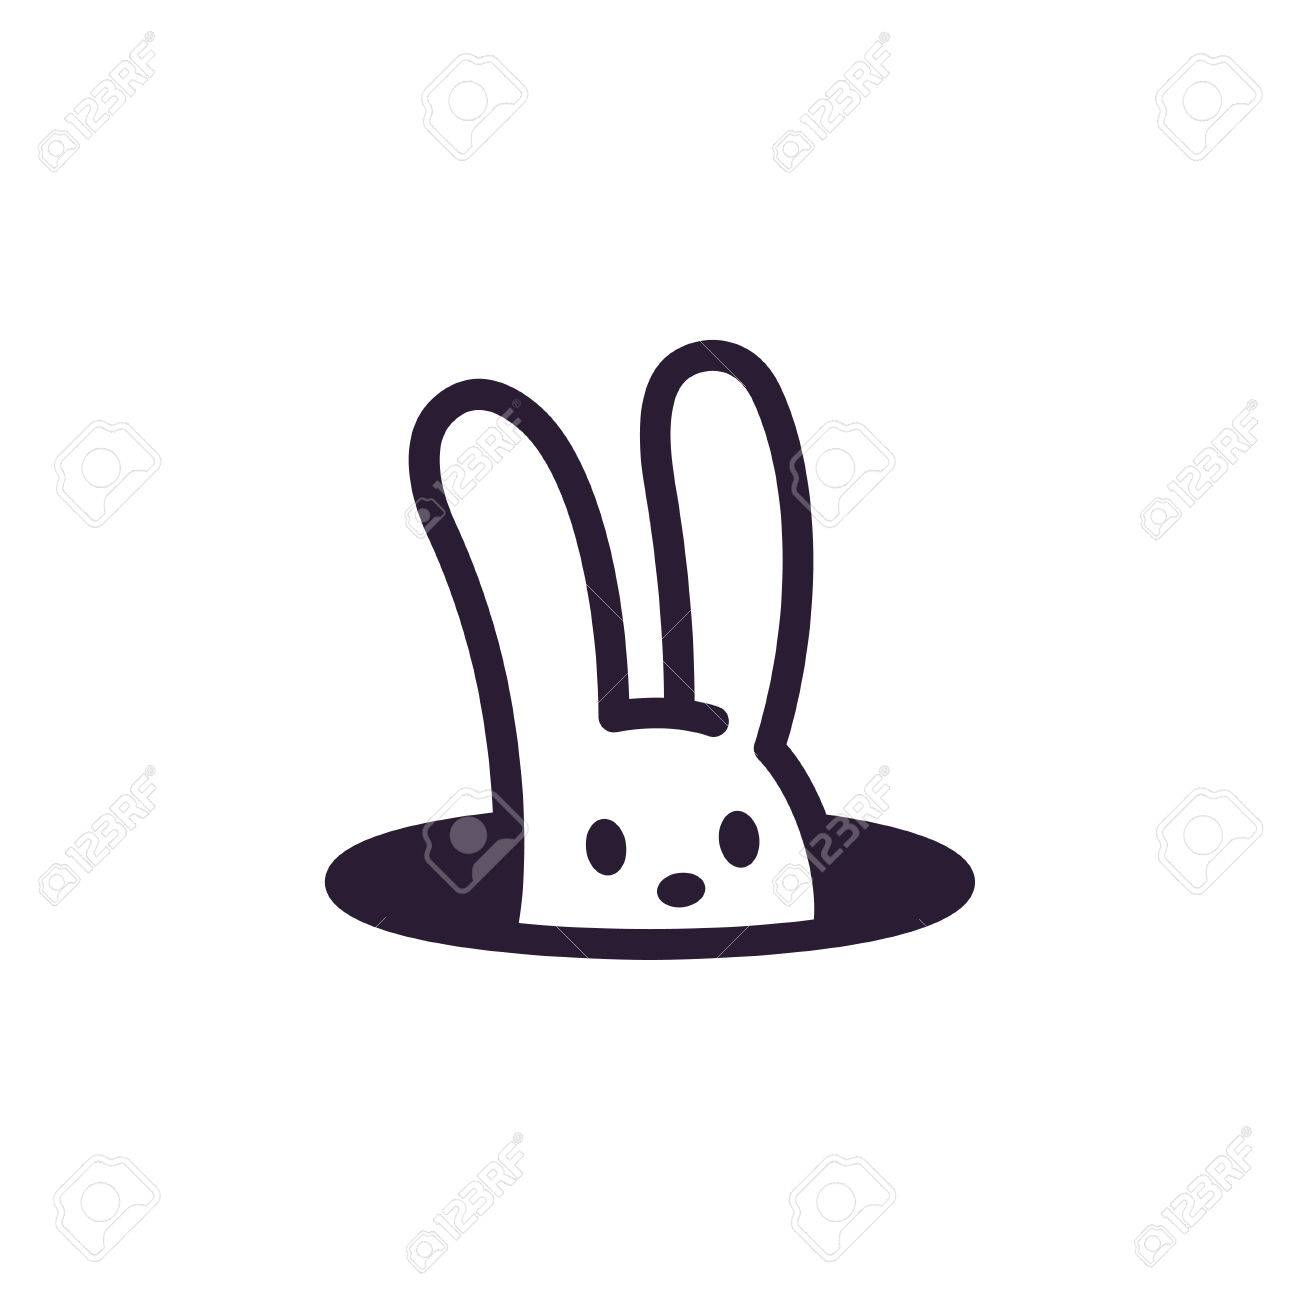 Logo De Trou De Lapin Simple Et Minimaliste Illustration De Vecteur